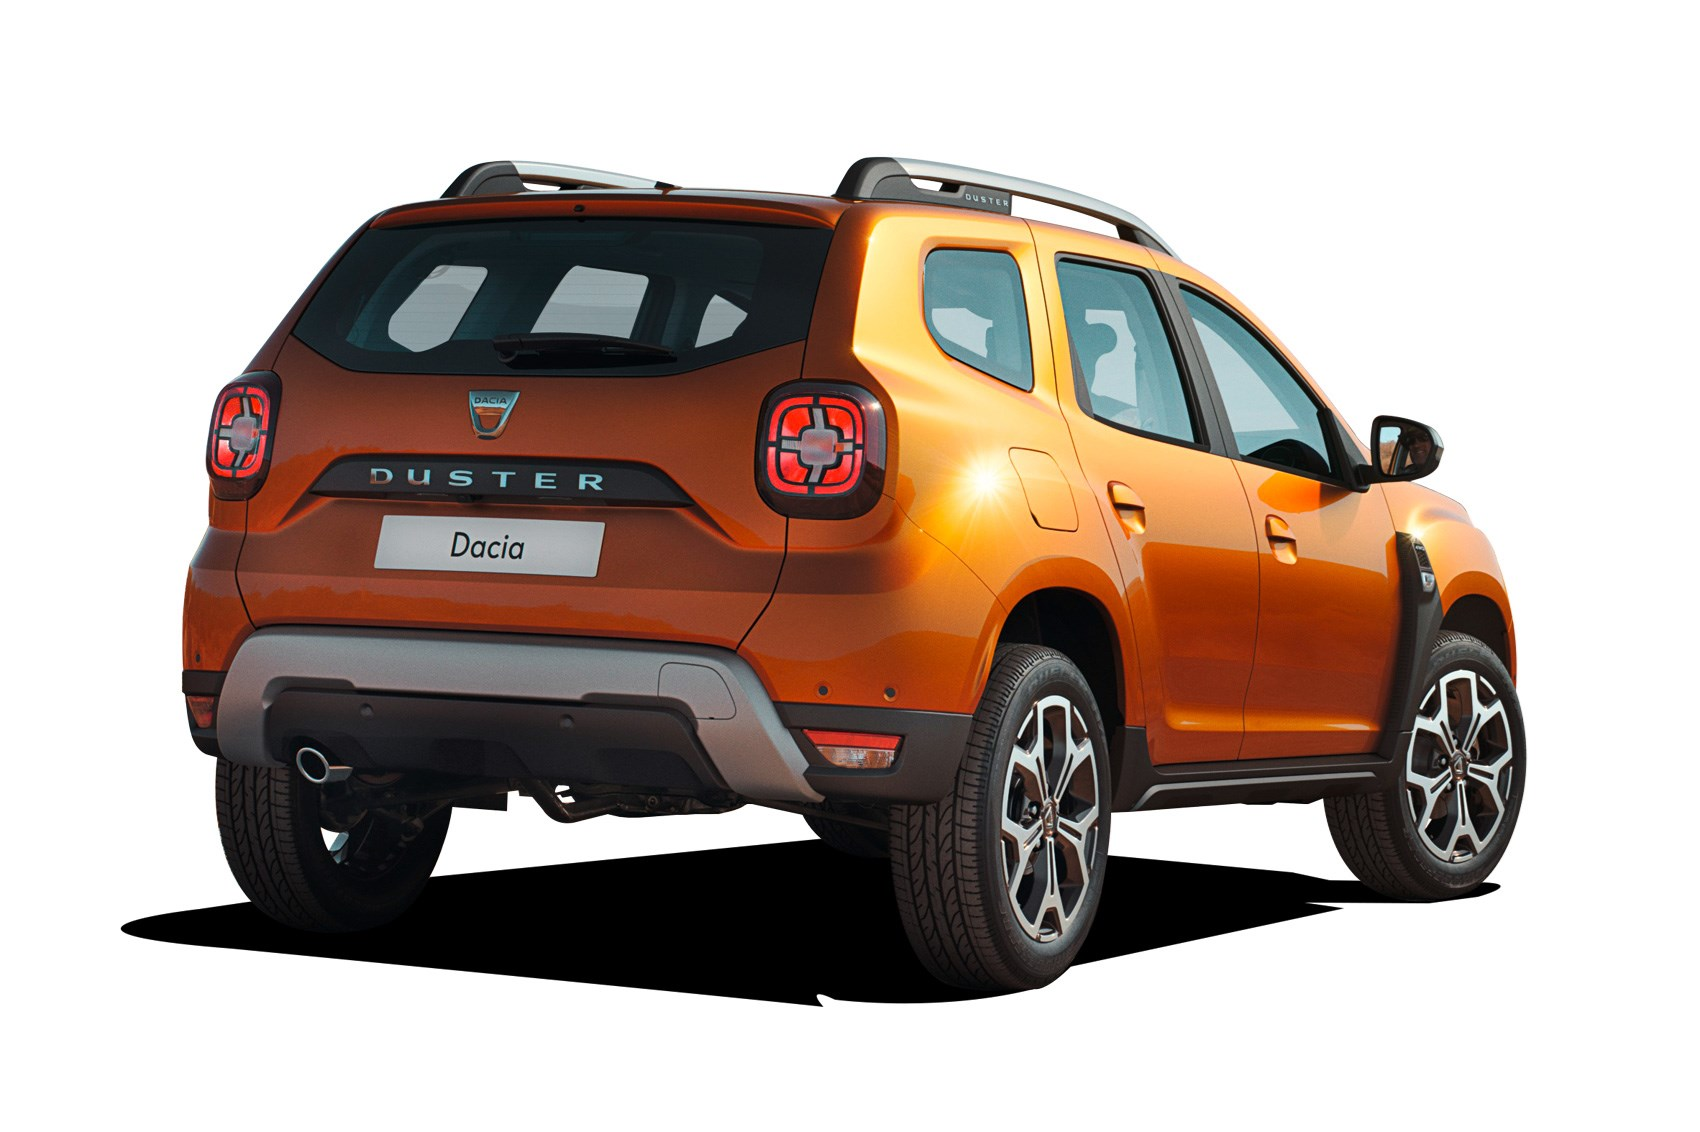 new 2018 dacia duster revealed pictures specs details by car magazine. Black Bedroom Furniture Sets. Home Design Ideas